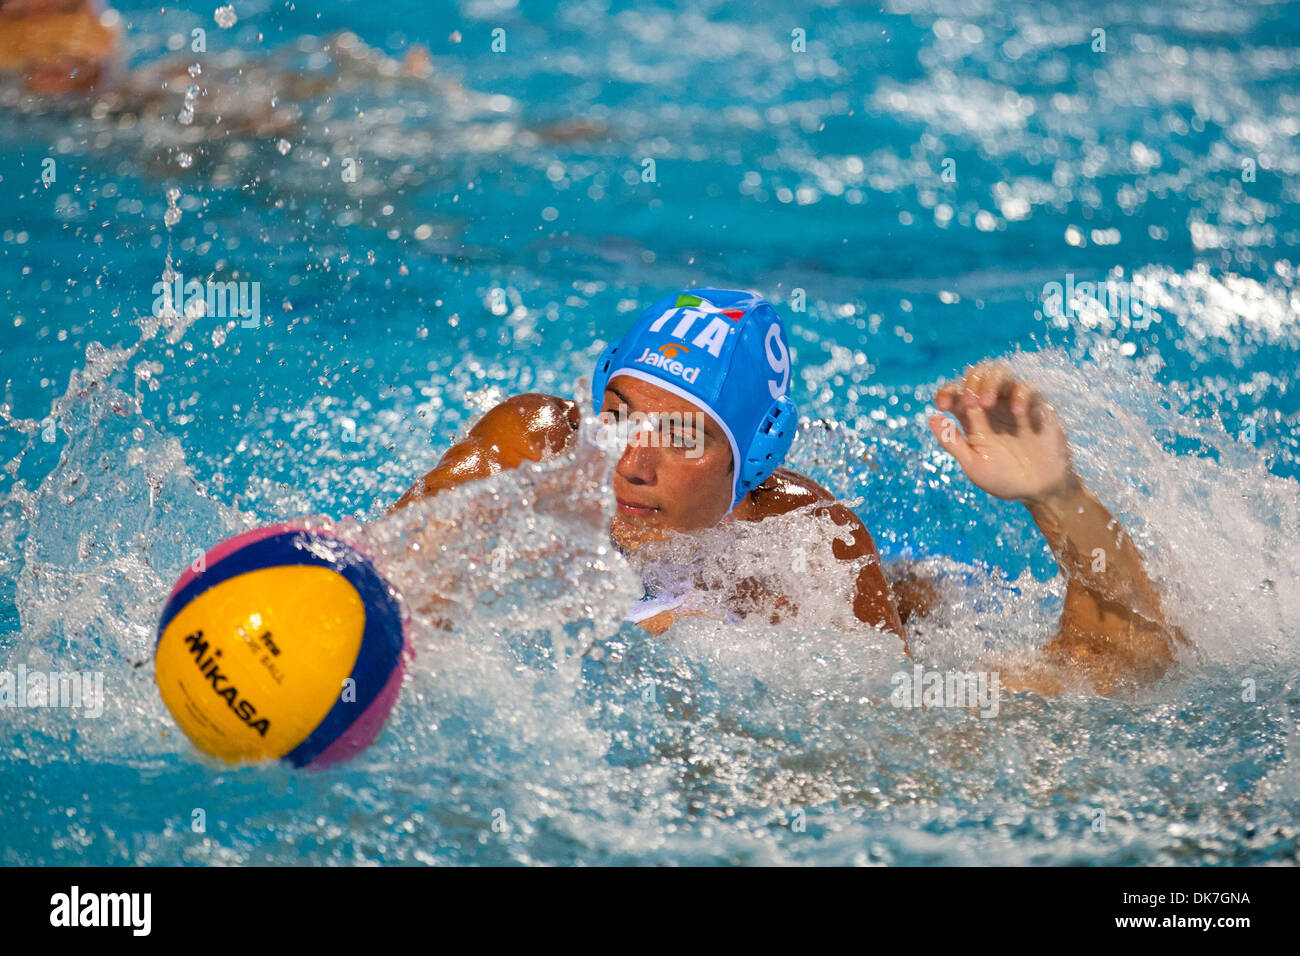 June 23, 2011 - Florence, Italy - n.9 Christian Presciutti from Italy struggles for ball possession during Italy vs China match at Water Polo World League Super Final on day 3. Italy defeated China 12-9 (Credit Image: © Marcello Farina/Southcreek Global/ZUMAPRESS.com) - Stock Image